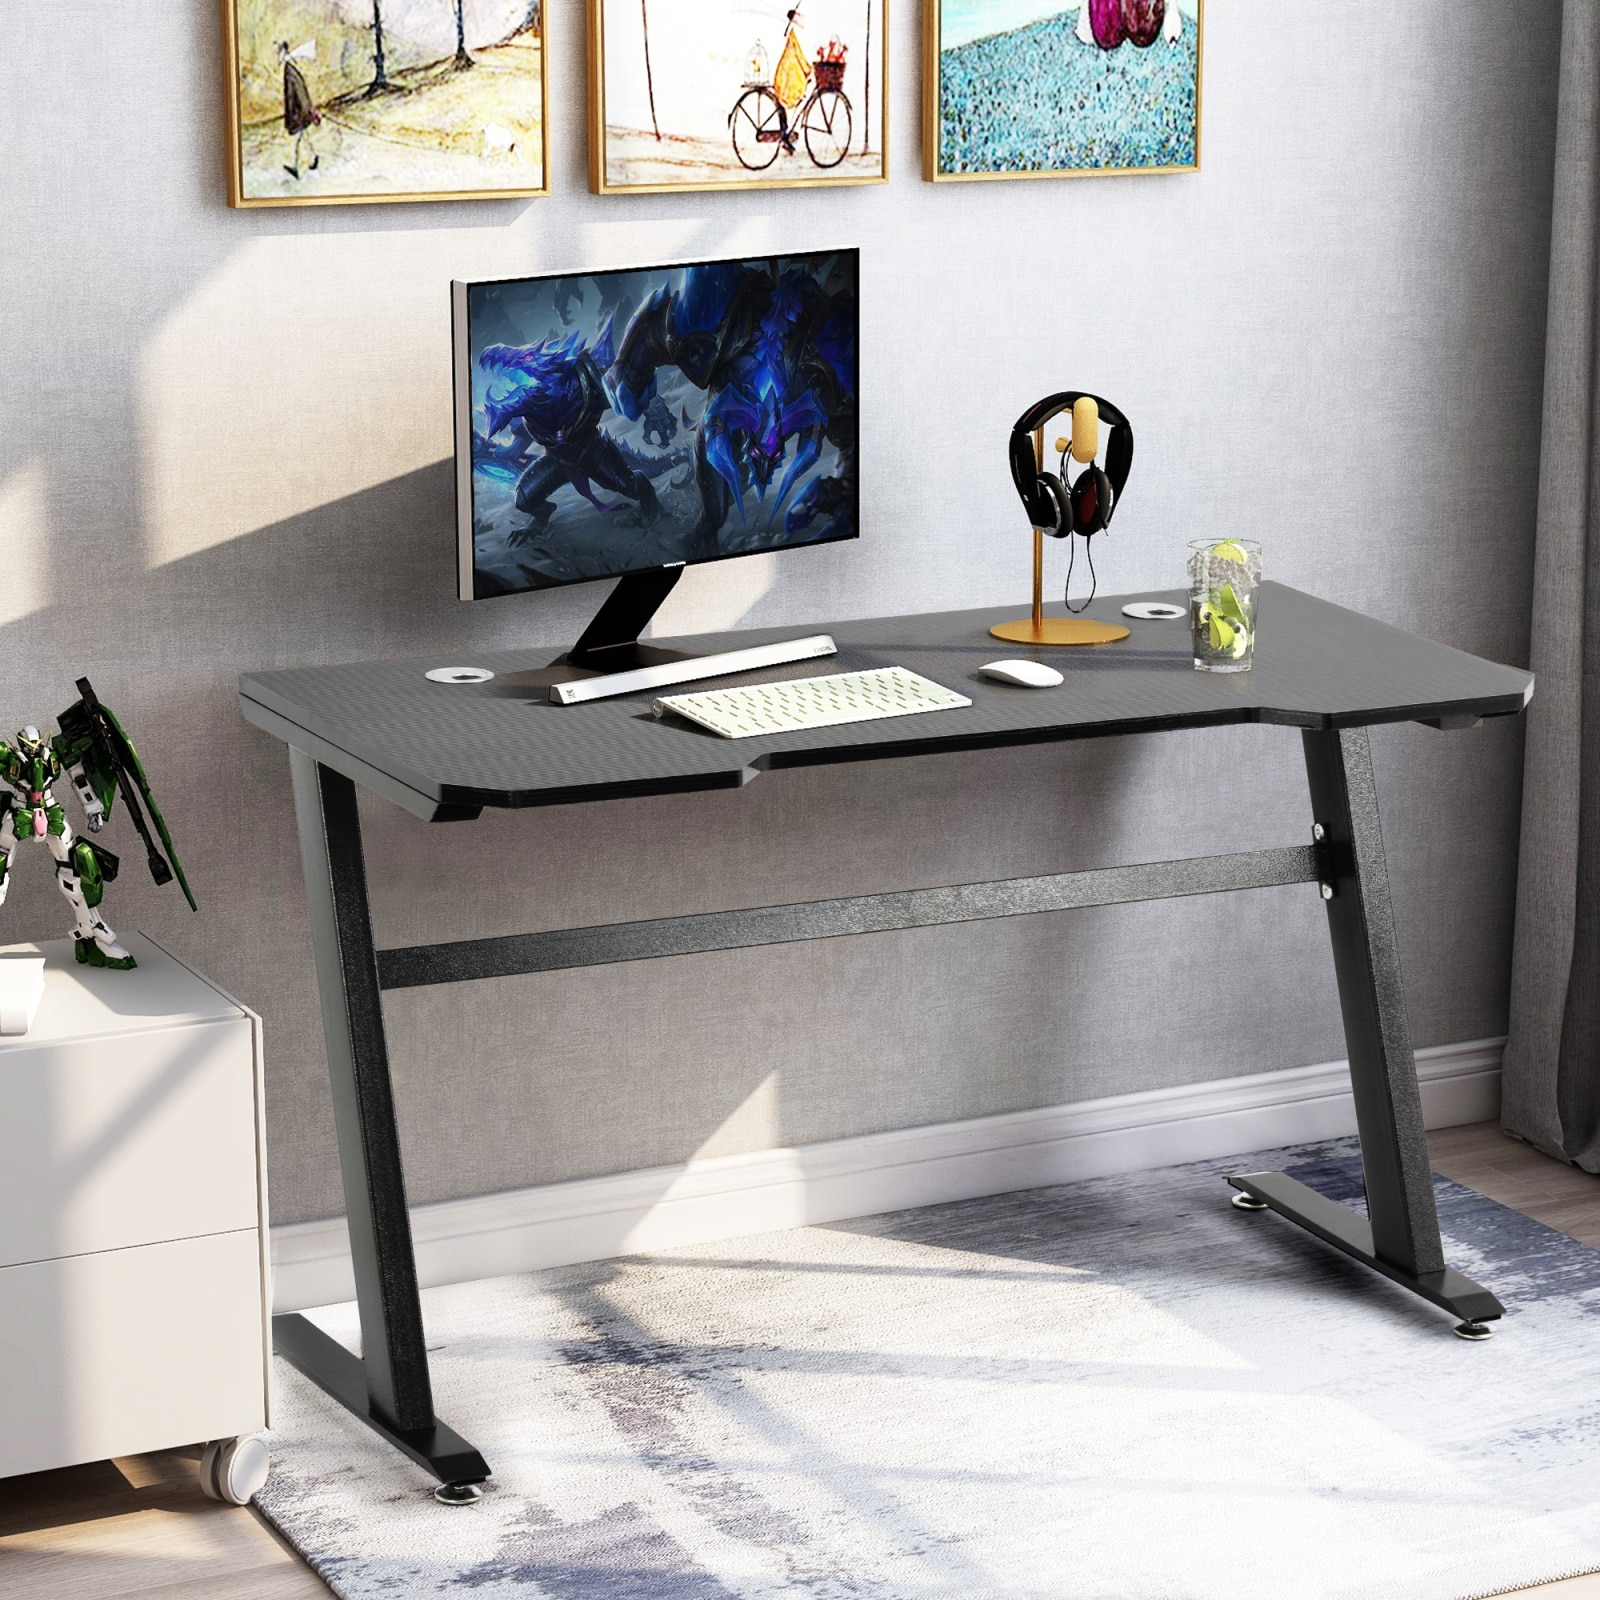 Gaming Desk E-sports Computer Table PC Gamer Tables Workstation Home Office Furniture